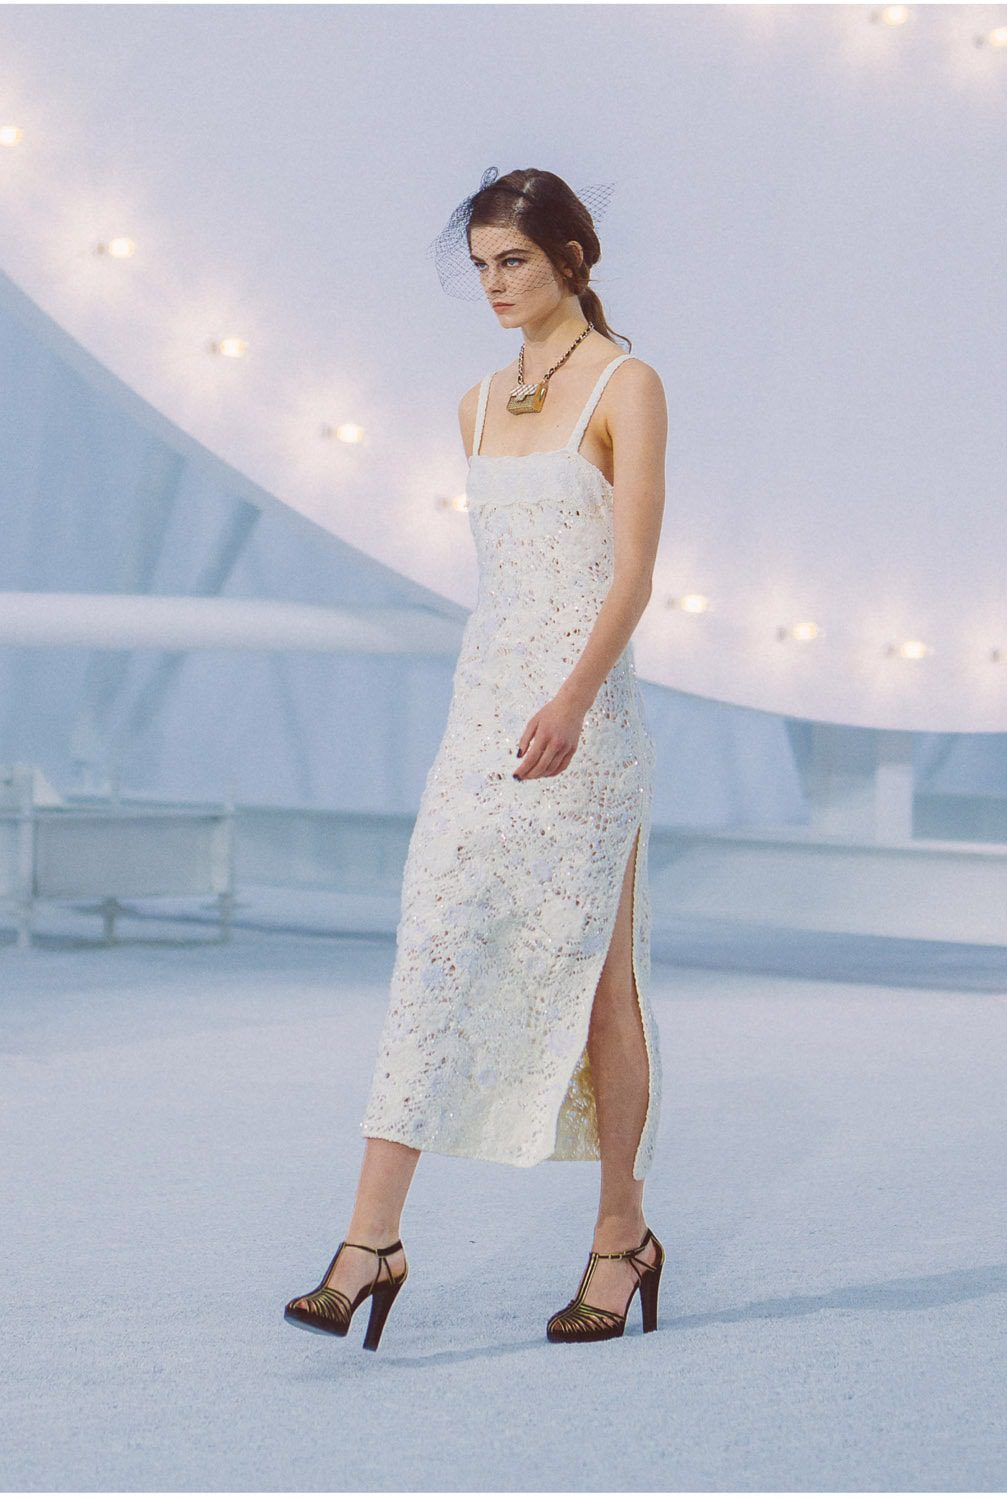 Chanel Spring Summer 2021 by RUNWAY MAGAZINE